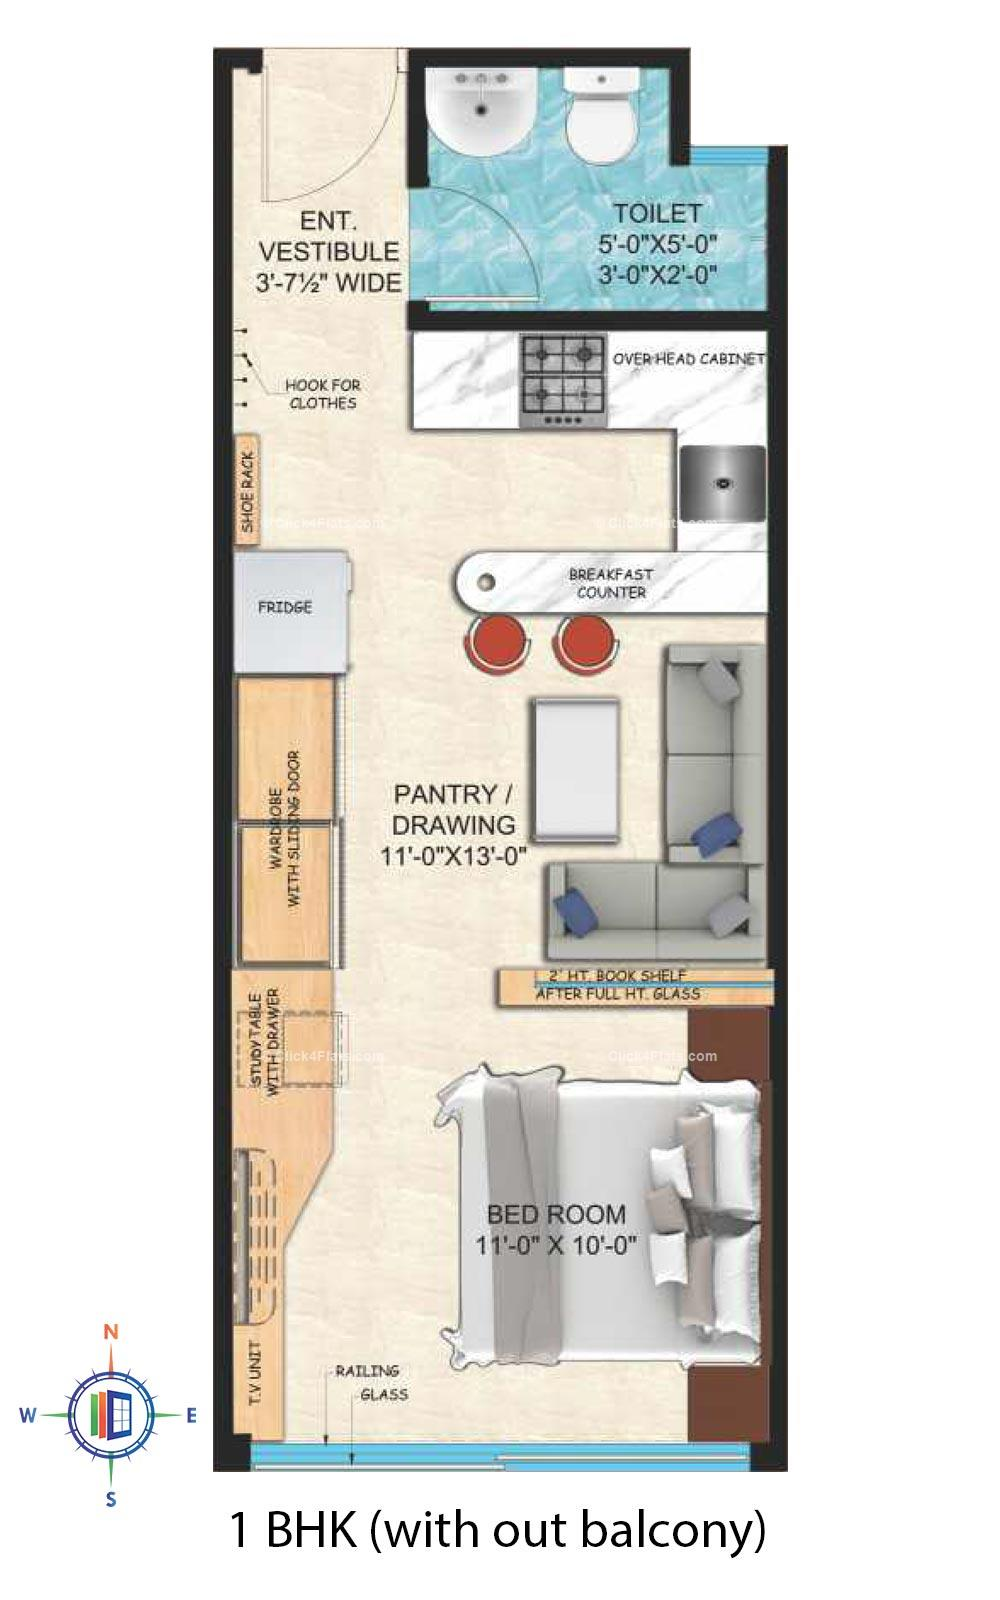 Upasana First Avenue 1 BHK